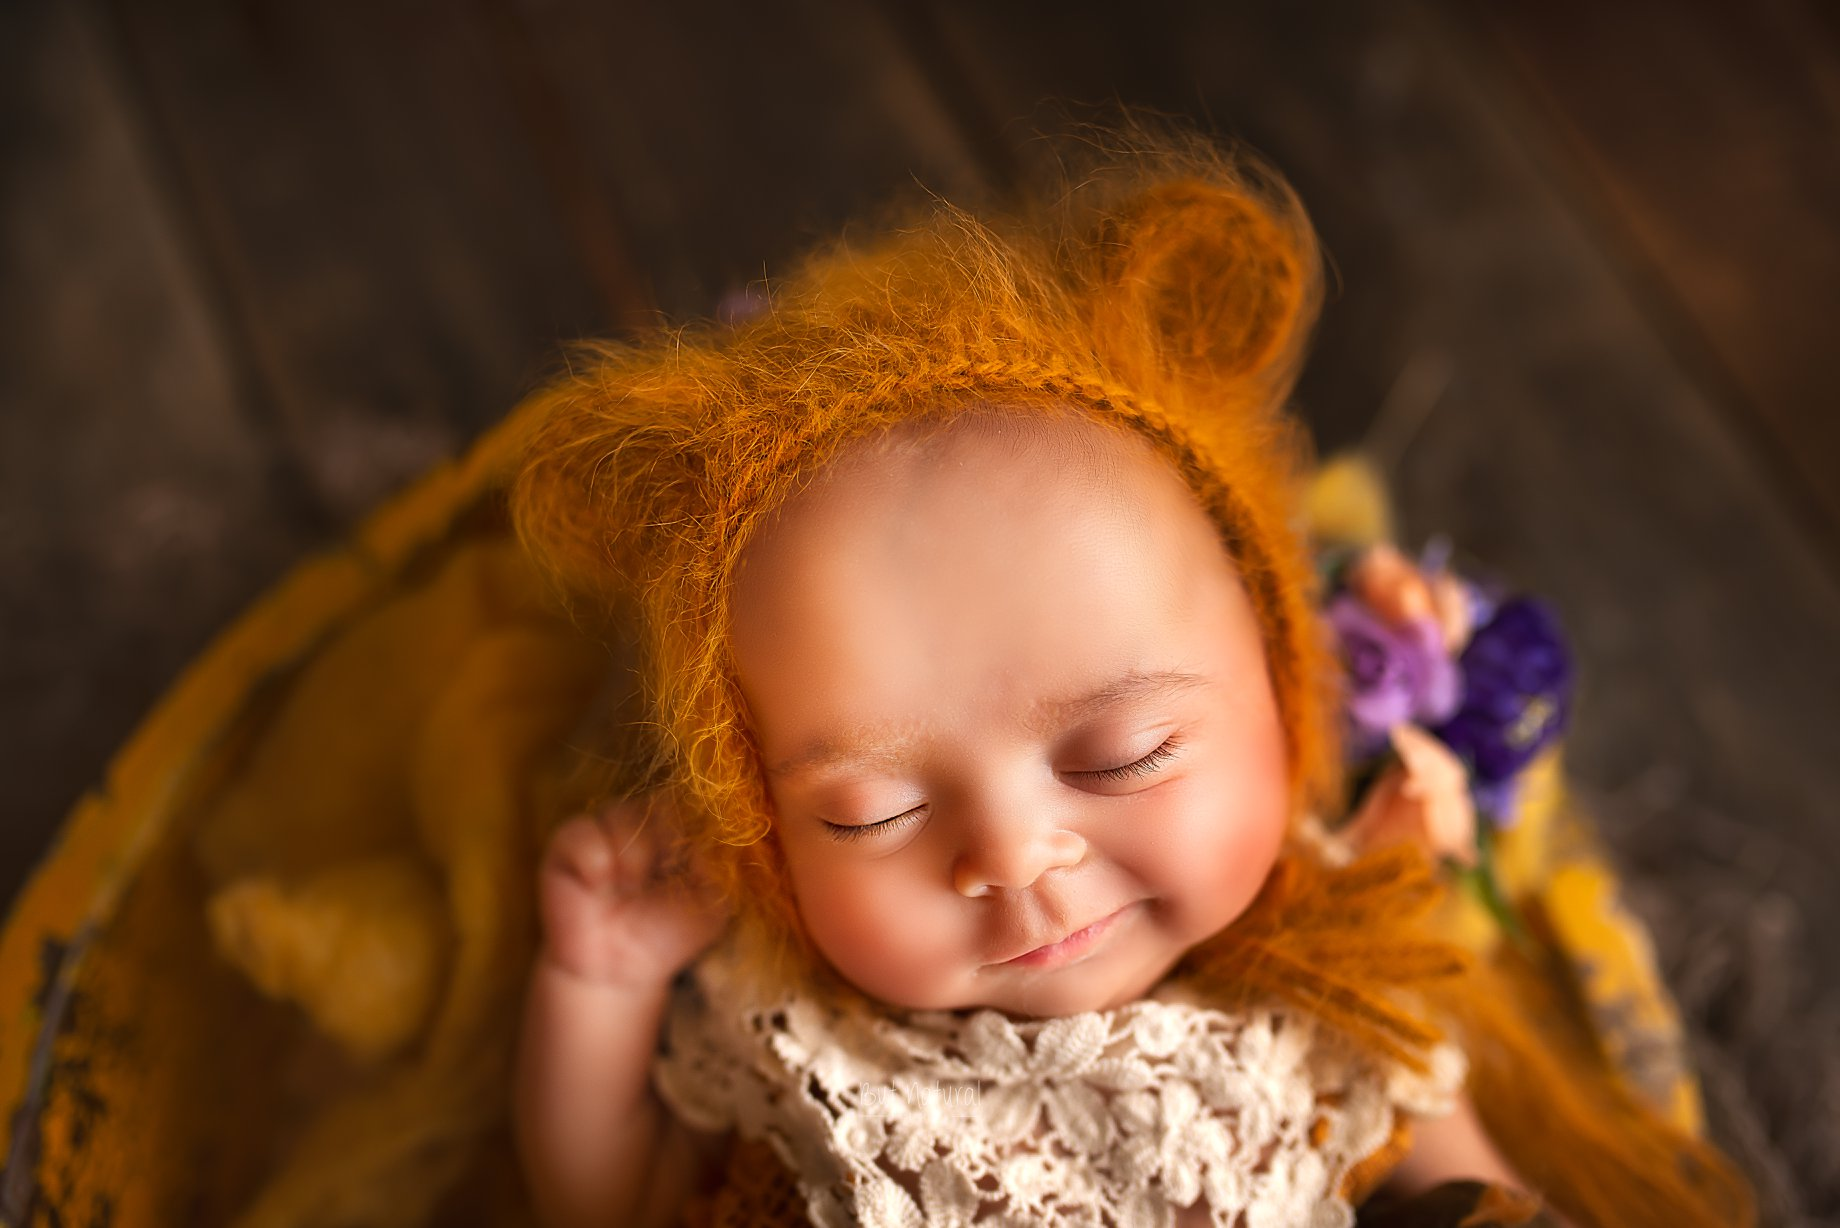 Newborn with a cute a cute little smile | Newborn baby photographer Sujata Setia | But Natural Photography